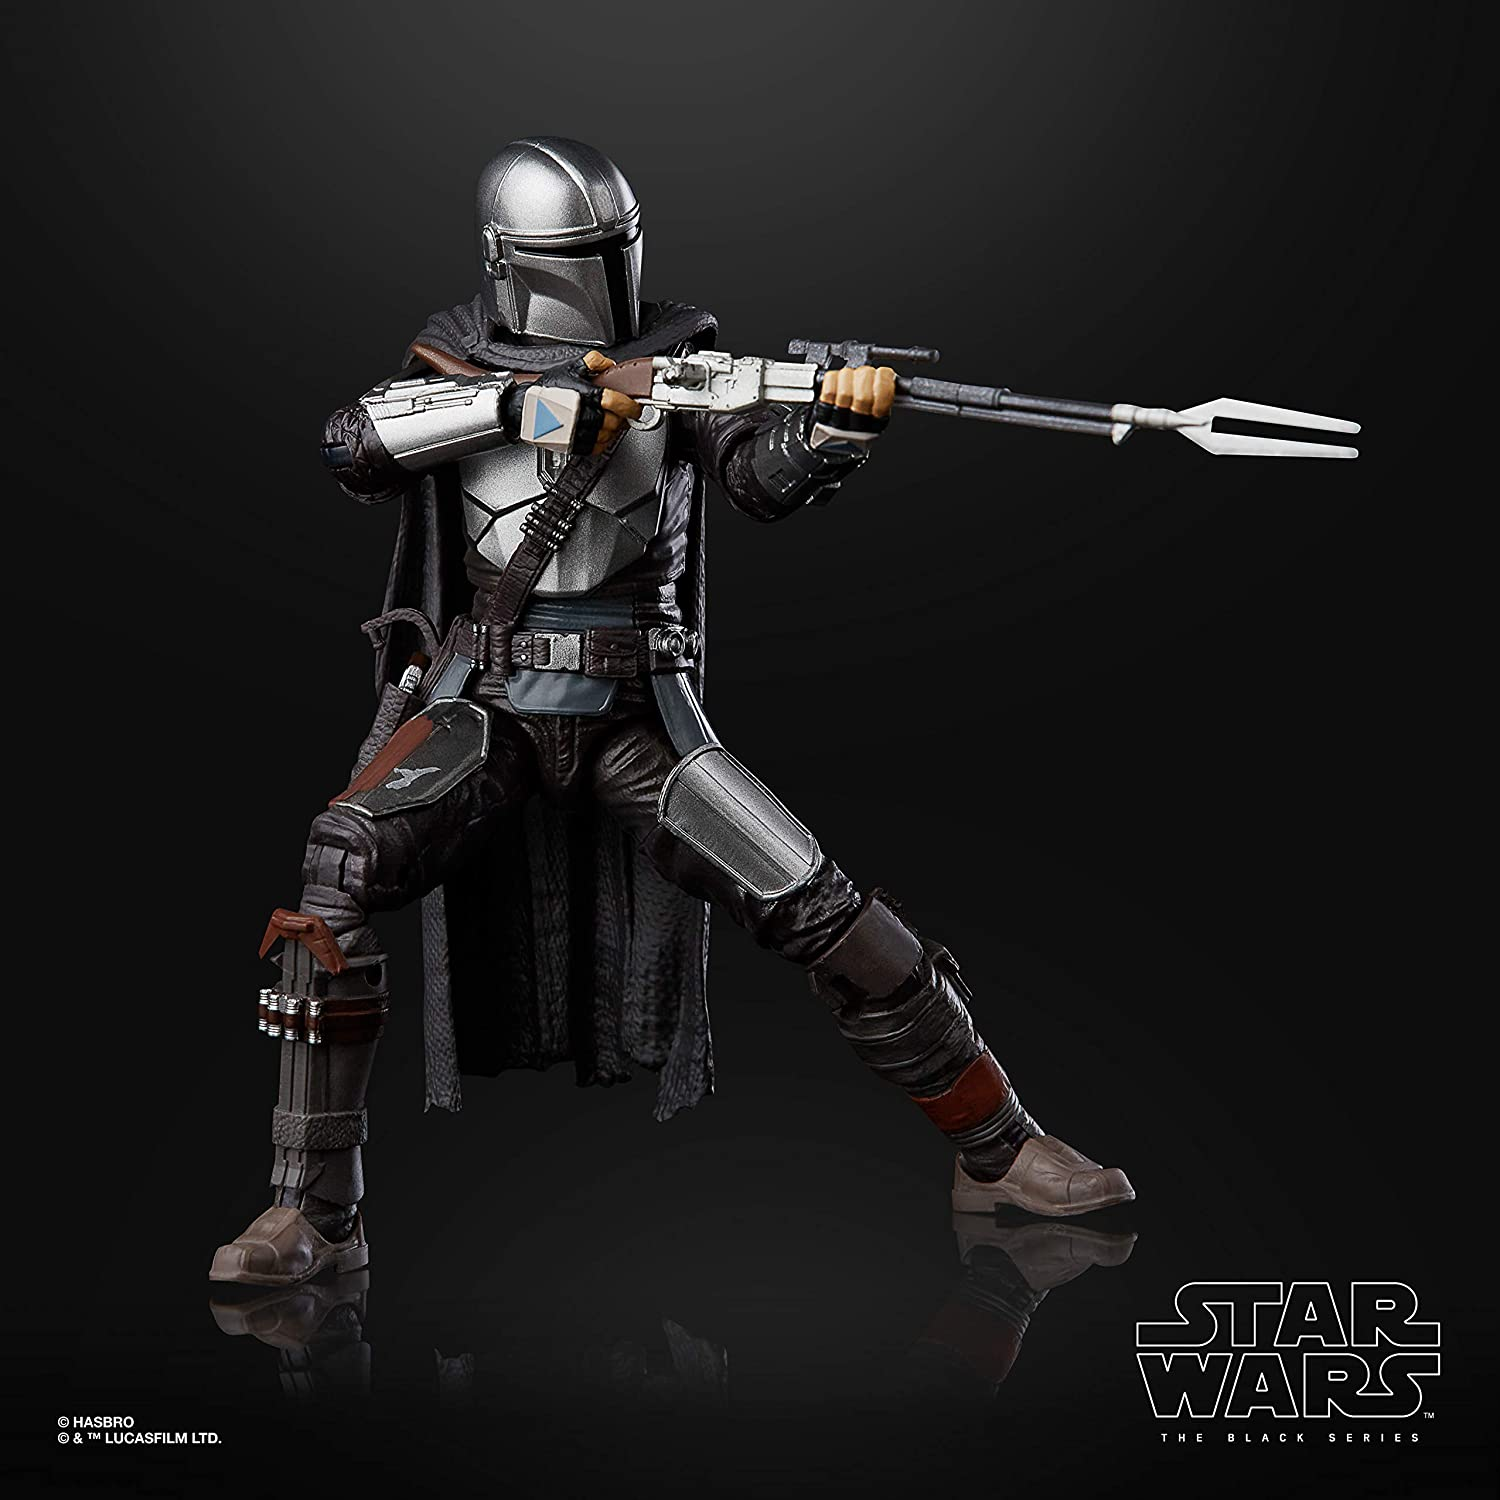 6inch Hasbro Star Wars Mandalorian anime action toy figures model toys for children With